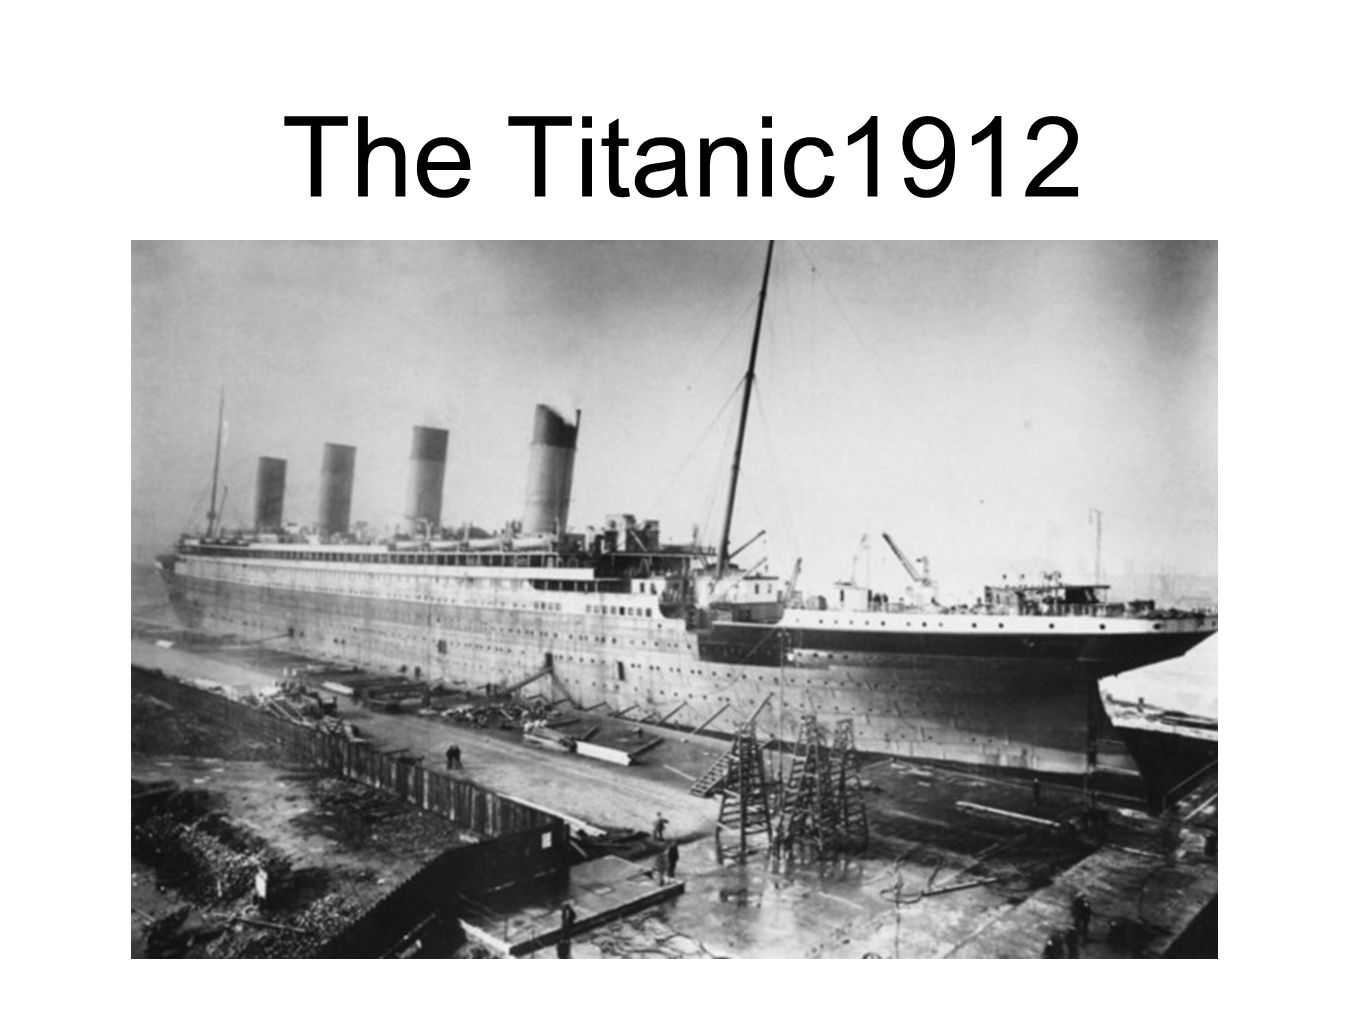 The Titanic1912